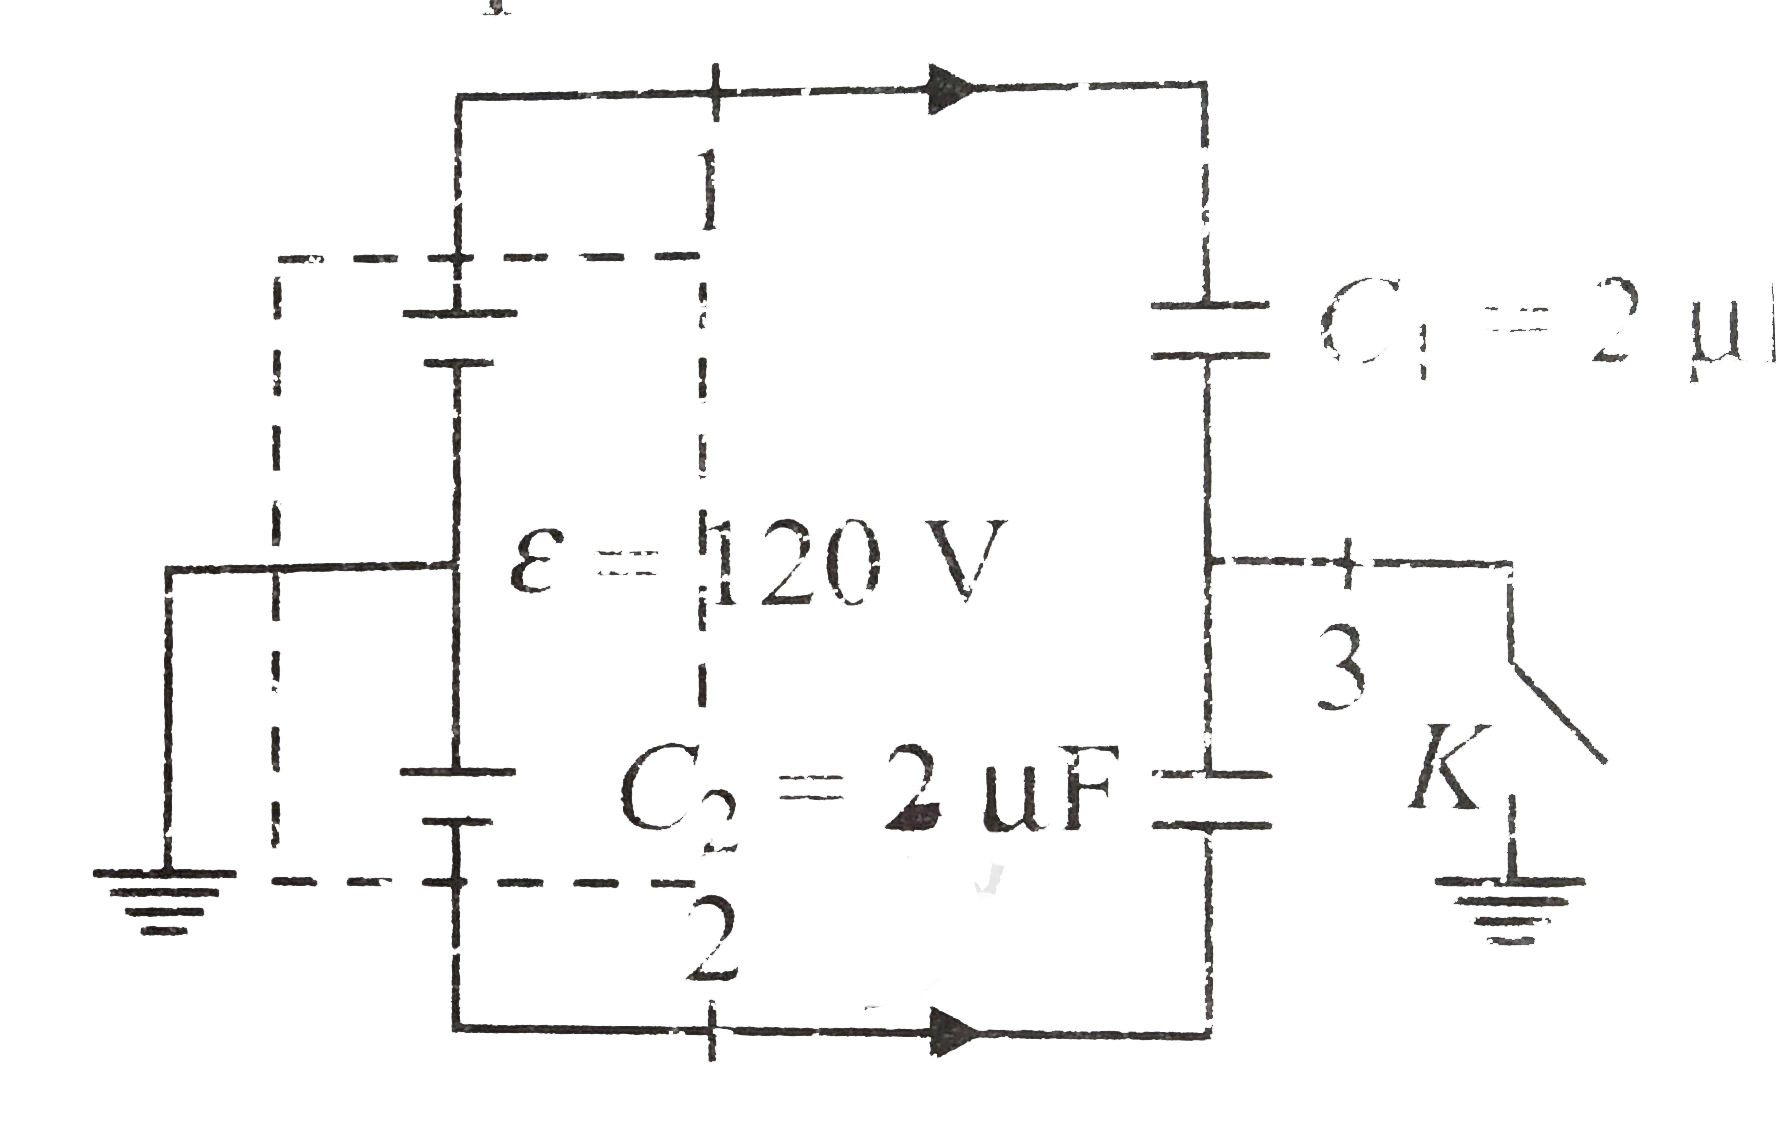 Capacitor C 1 2 Muf And C 2 3muf Are Connected In Series To